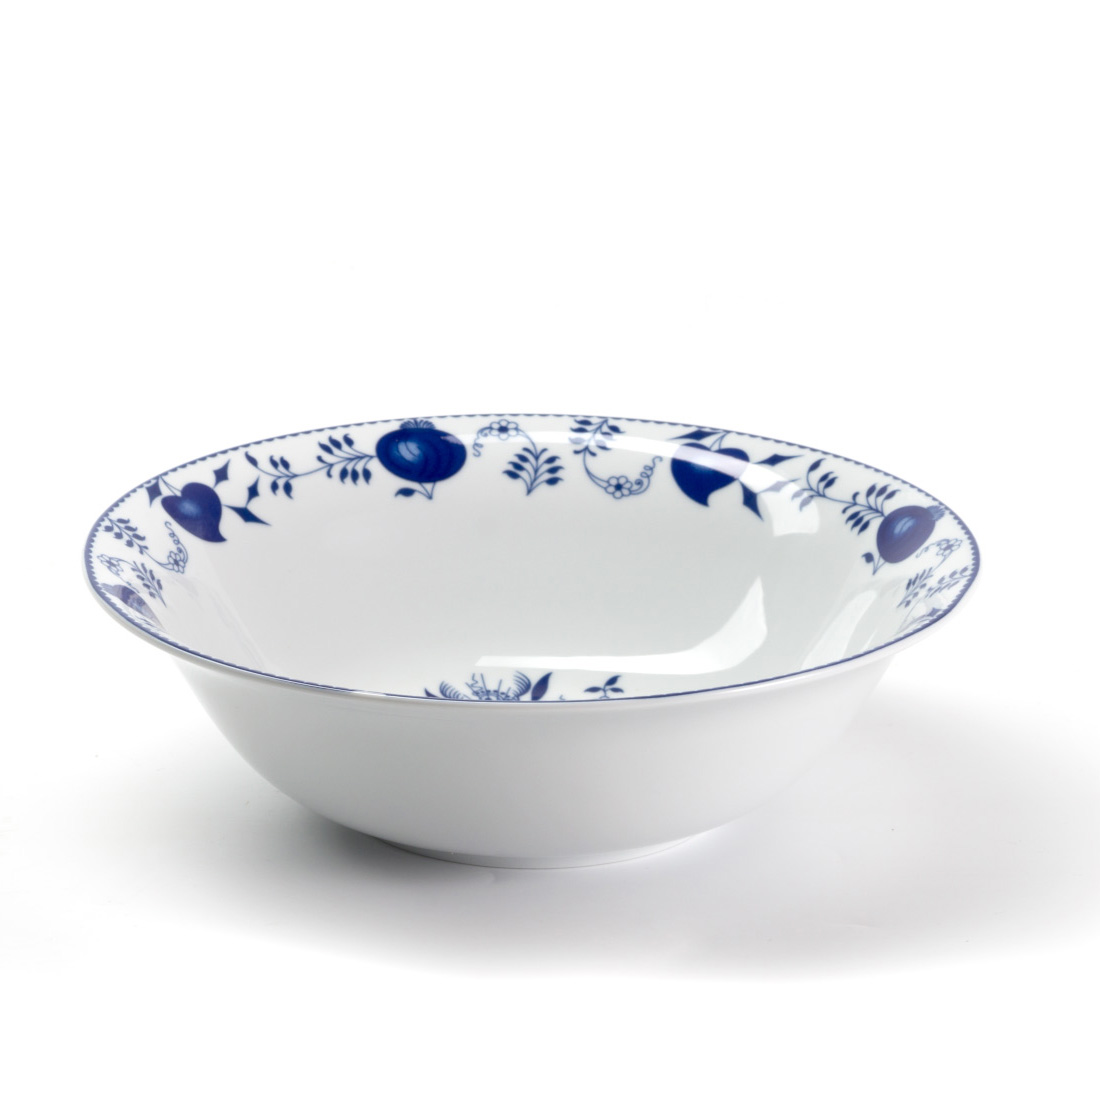 Салатник Onion blue, 25 см, 8 см, Фарфор, Tunisian Porcelain, Onion Blue